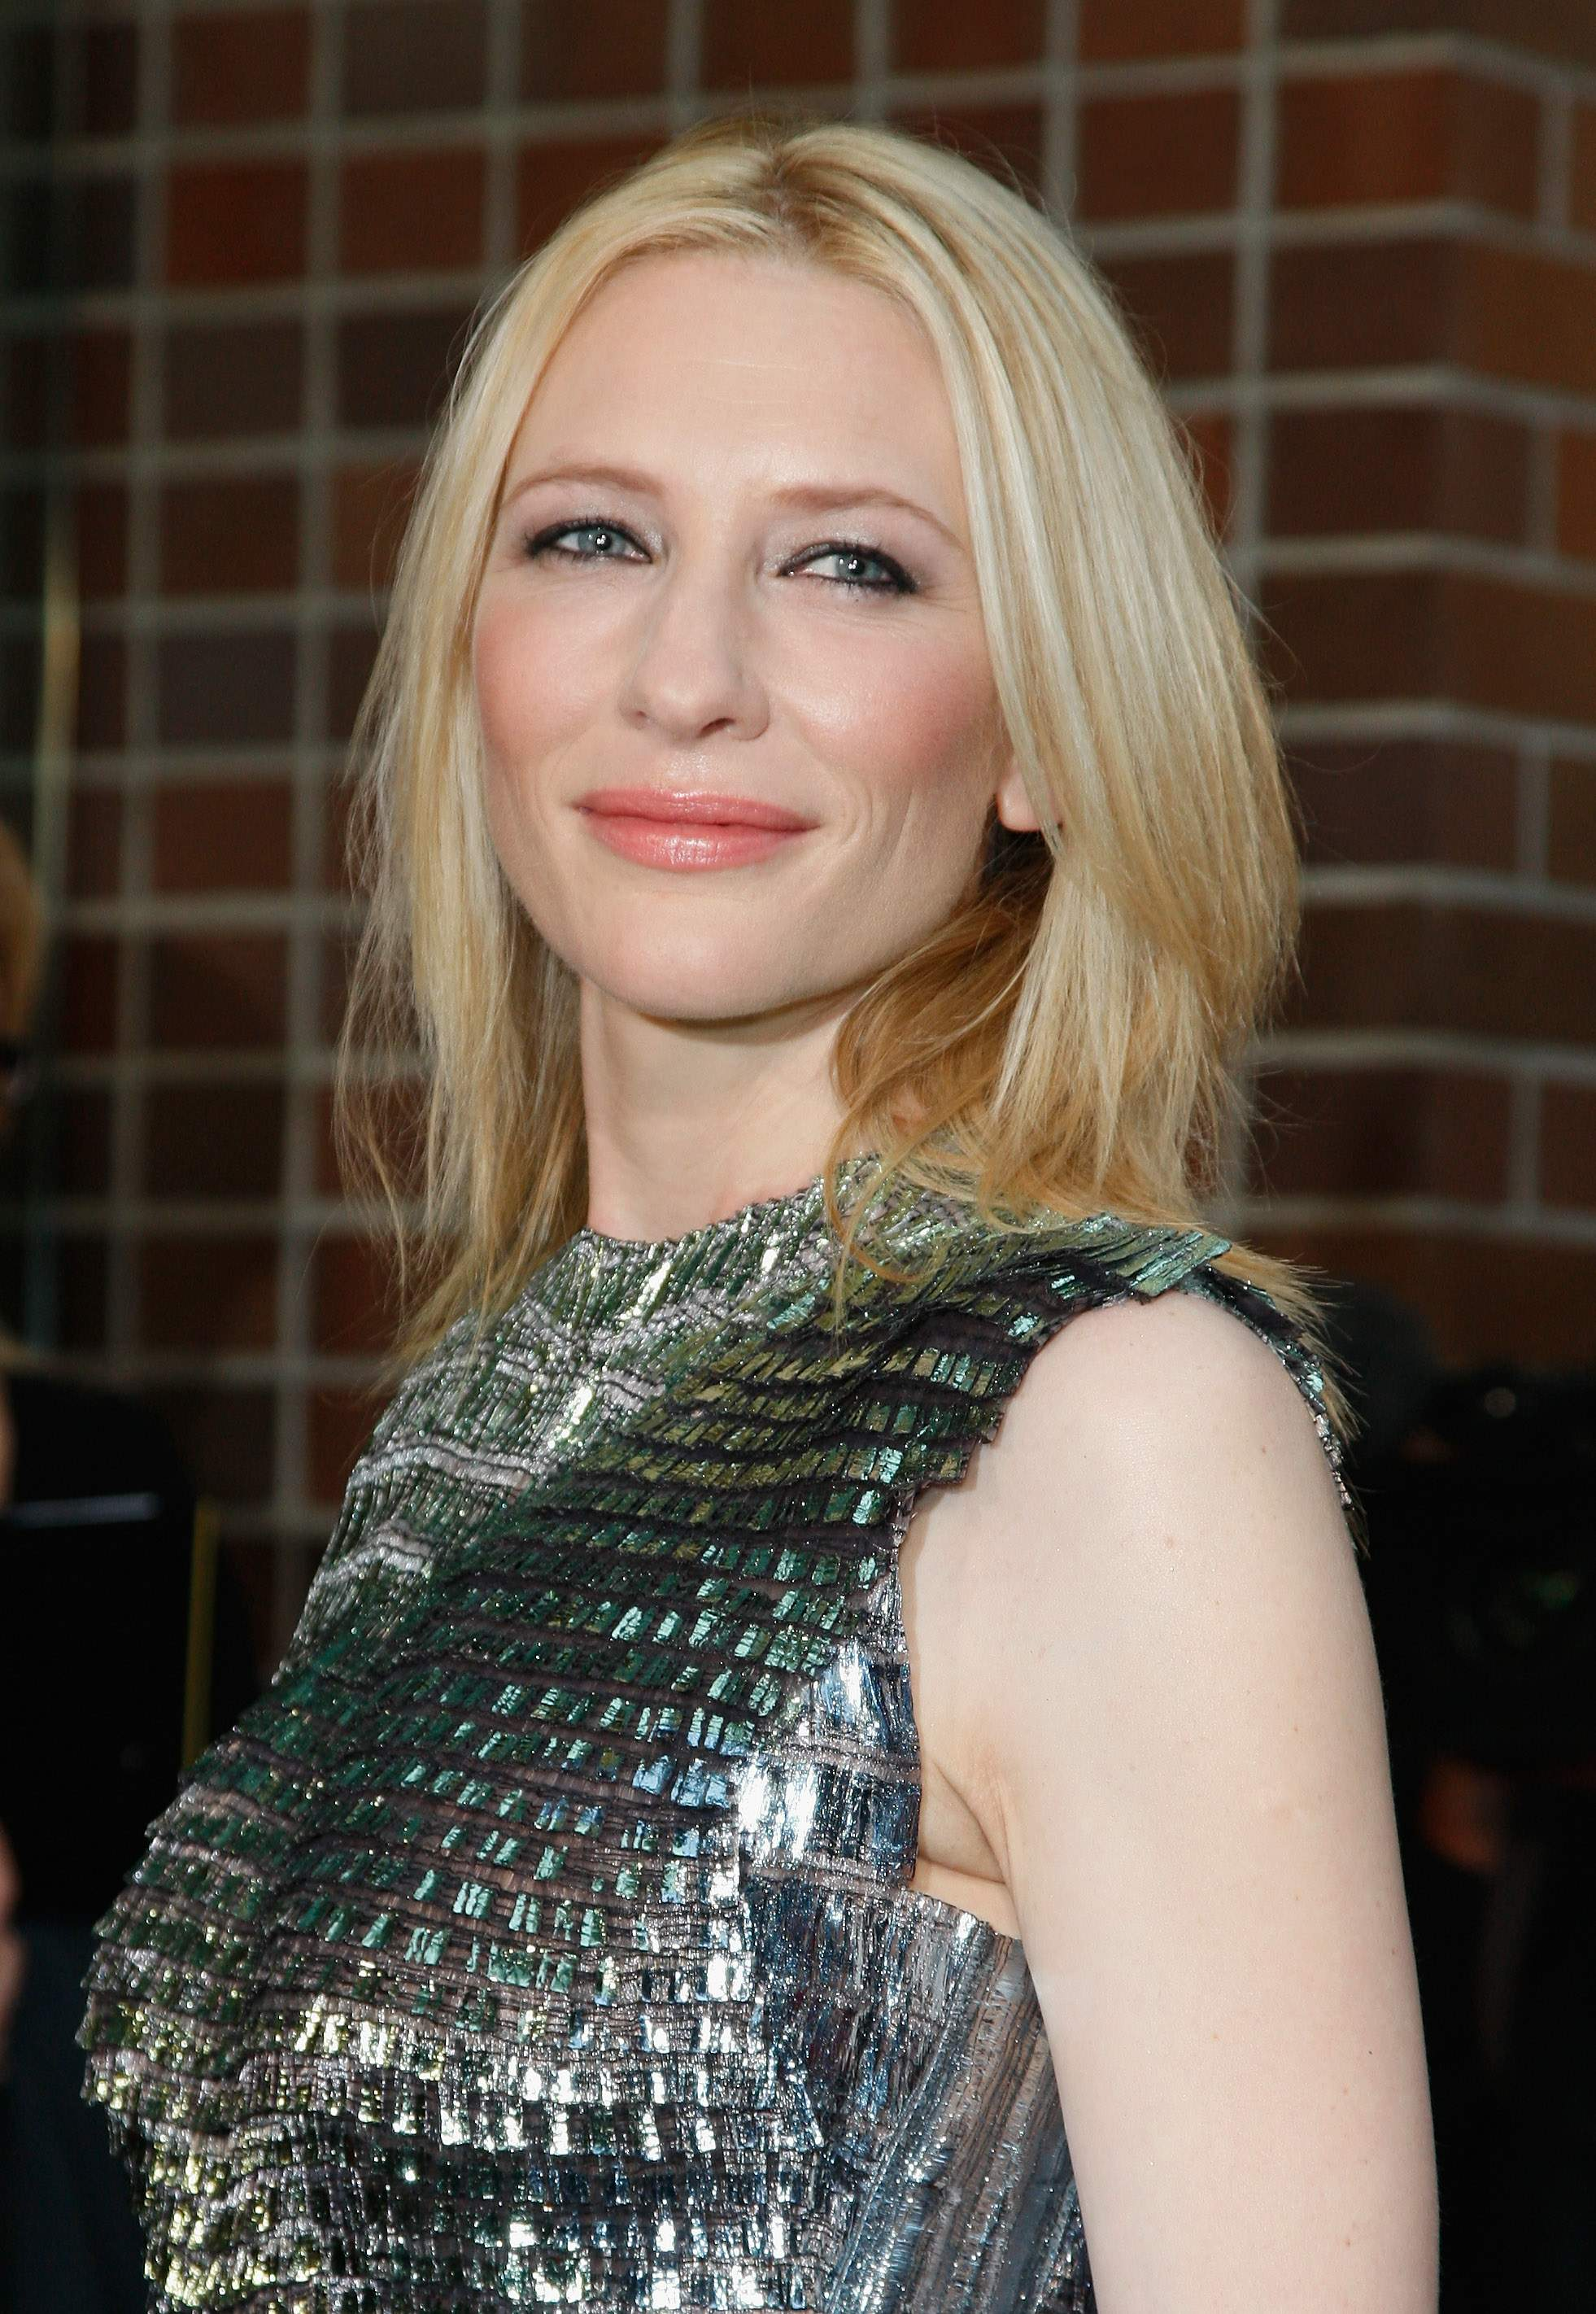 02227_cate-blanchett-the-curious-case-of-benjamin-button014_122_1149lo.jpg